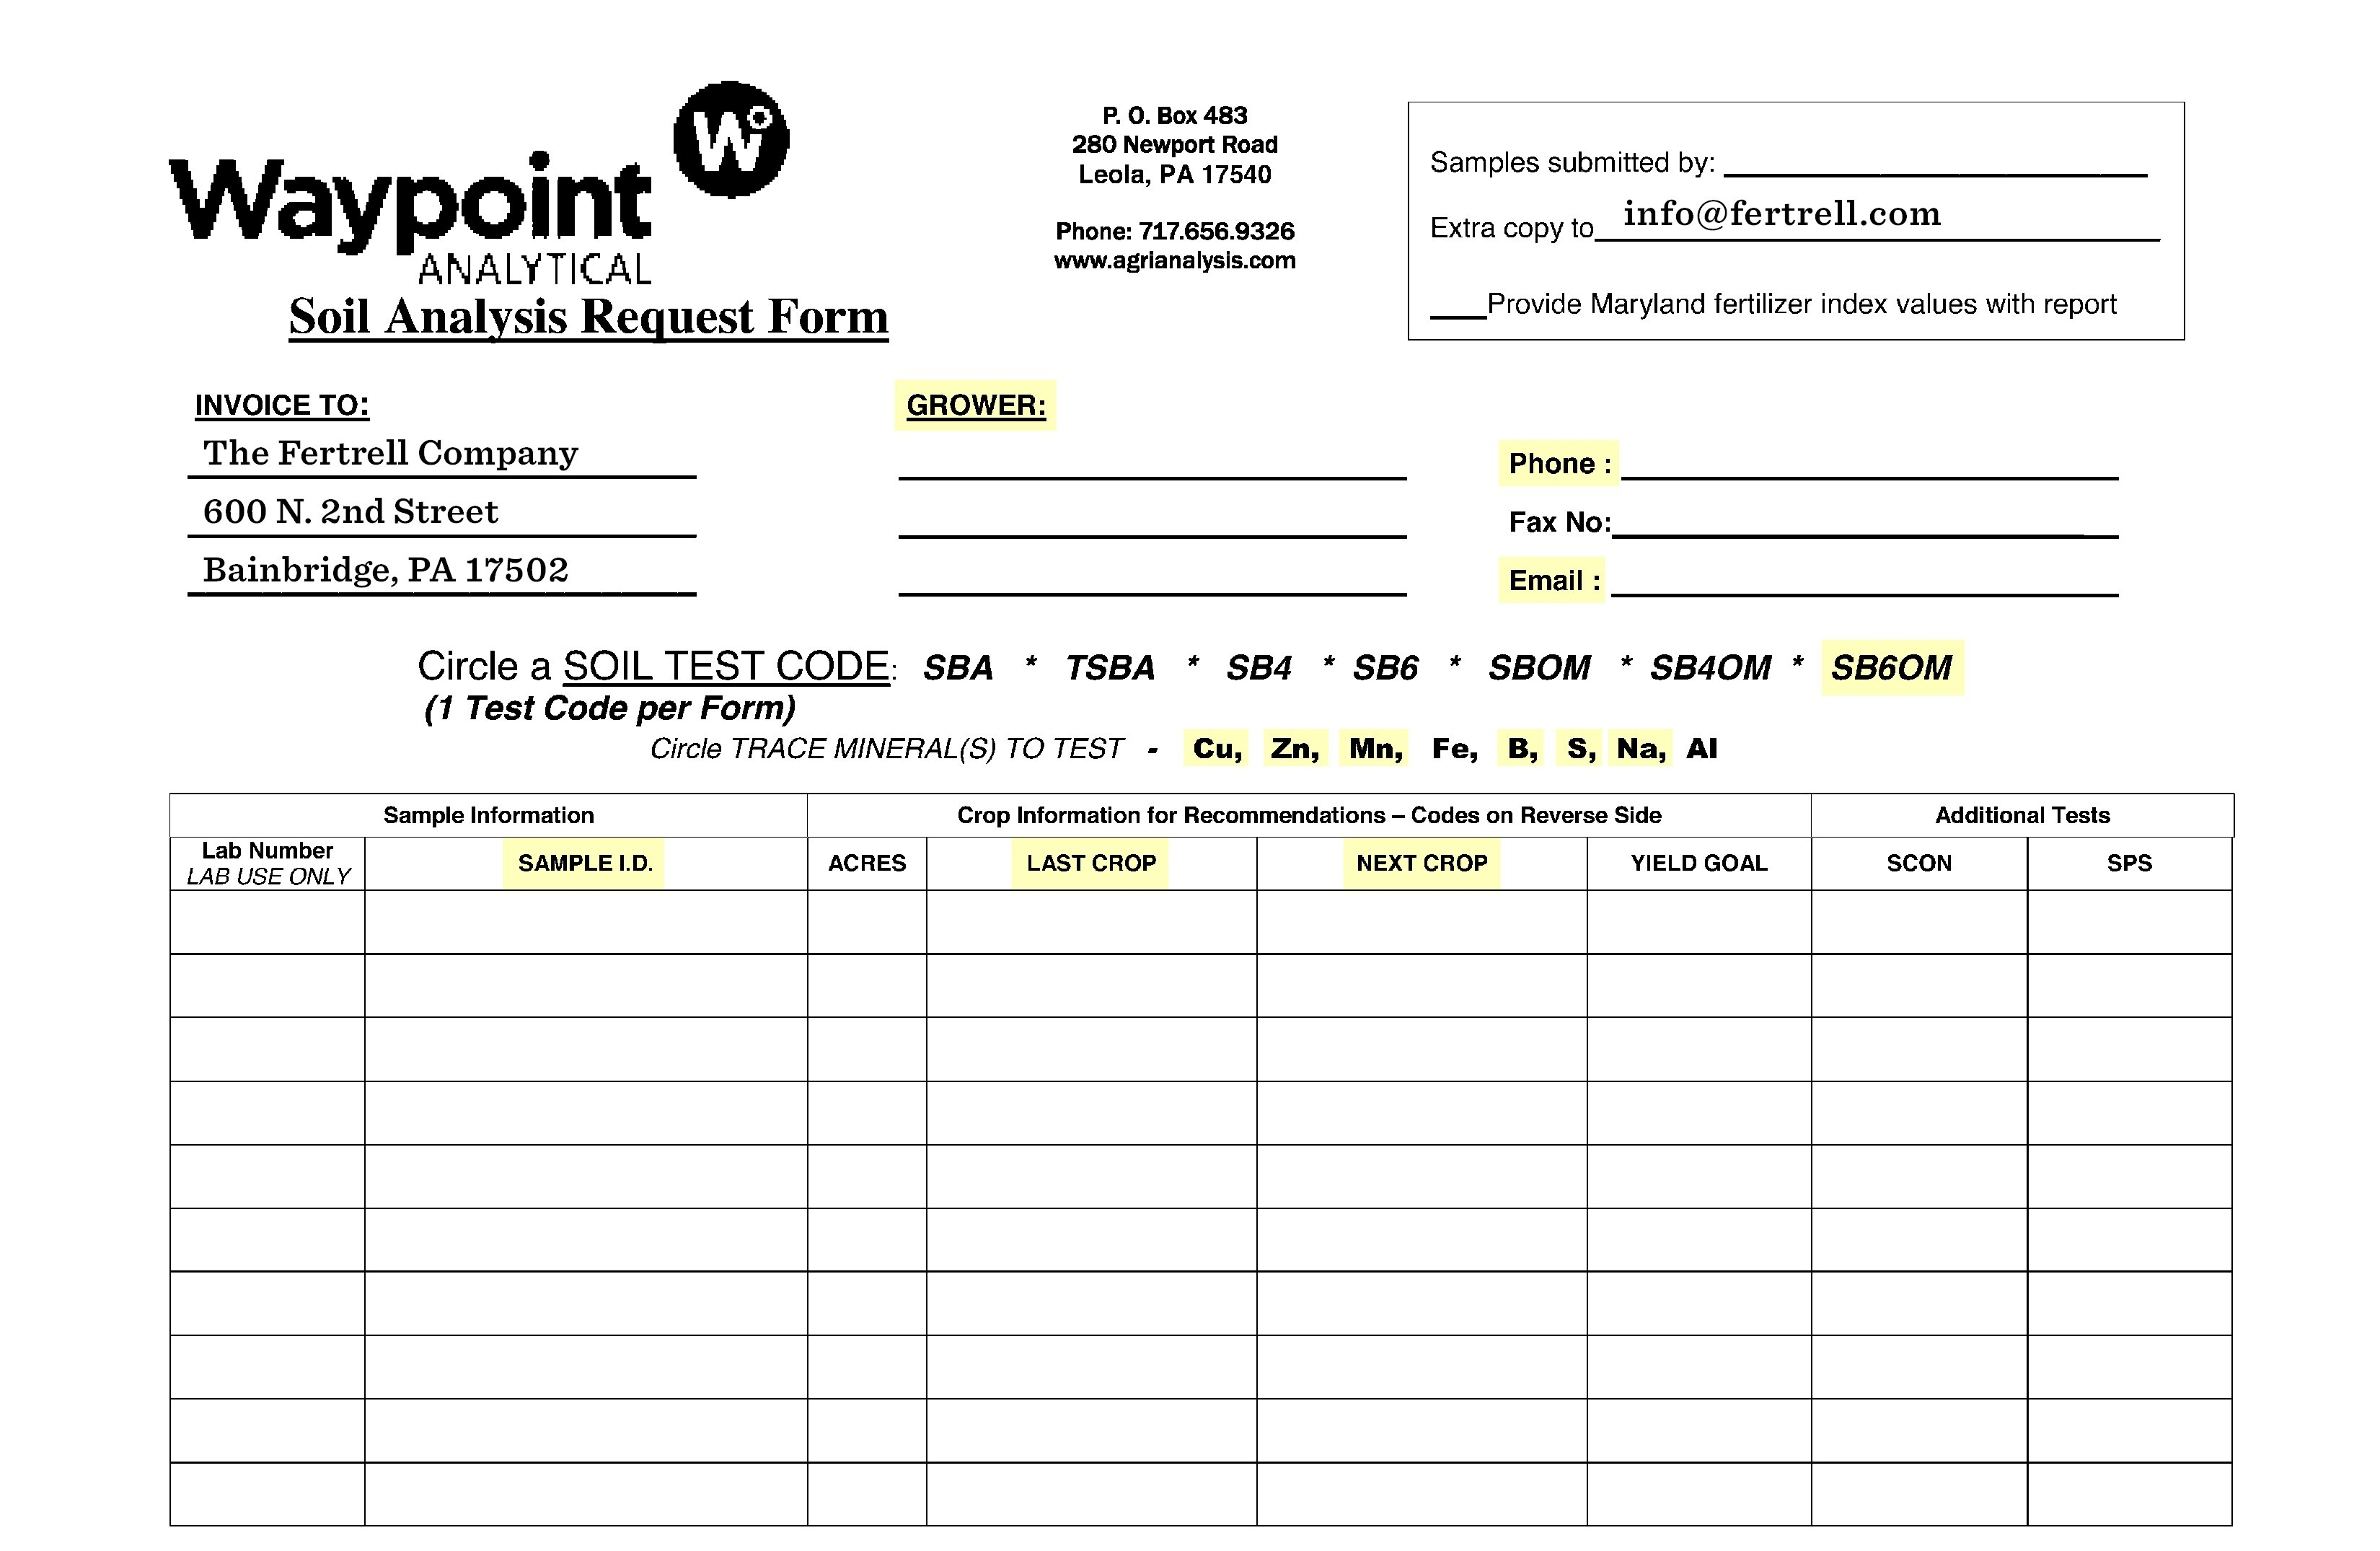 Waypoint Submittal Form